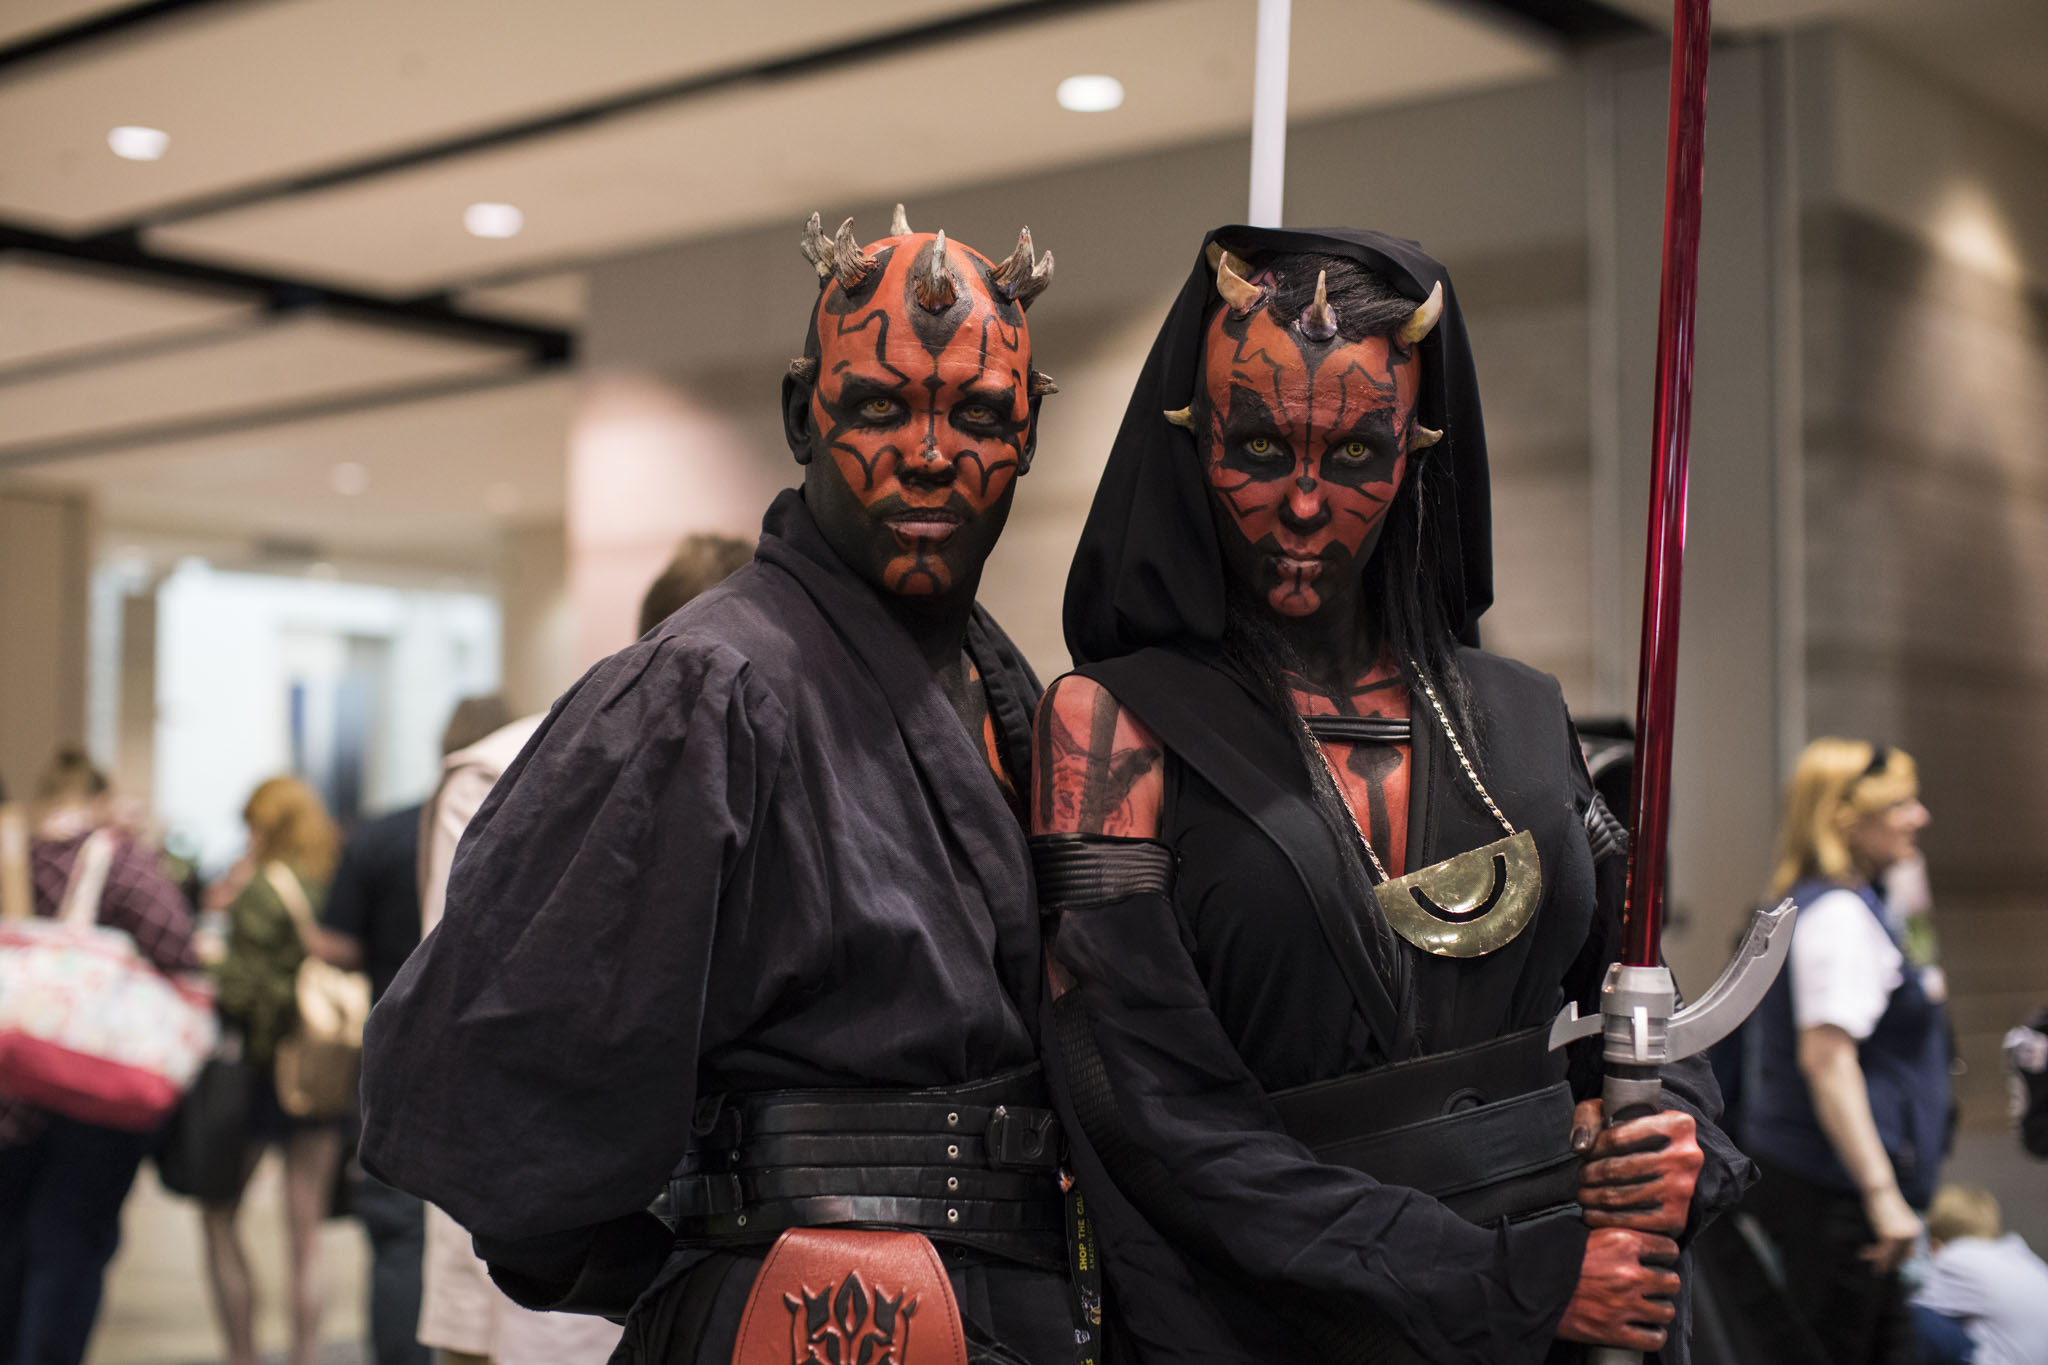 The best costumes (and droids) we spotted at Star Wars Celebration 2019